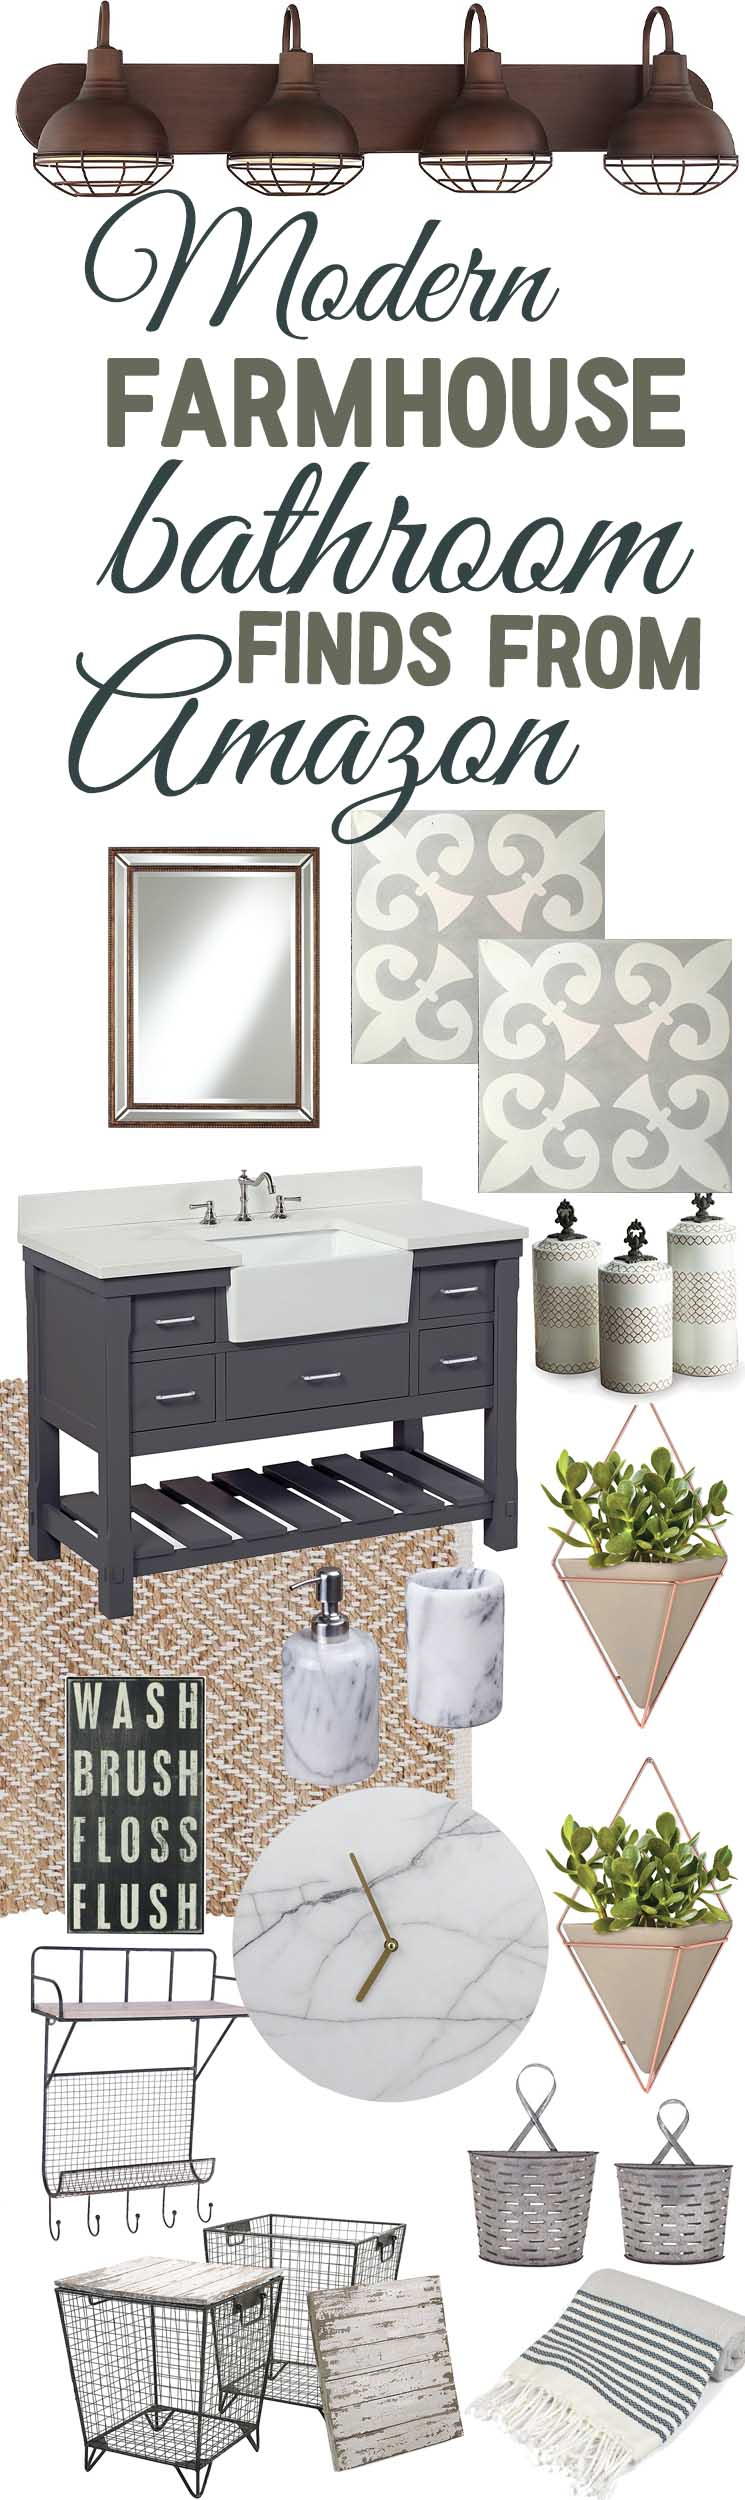 Modern Farmhouse Bathroom Decor Finds From Amazon - The Mountain ...